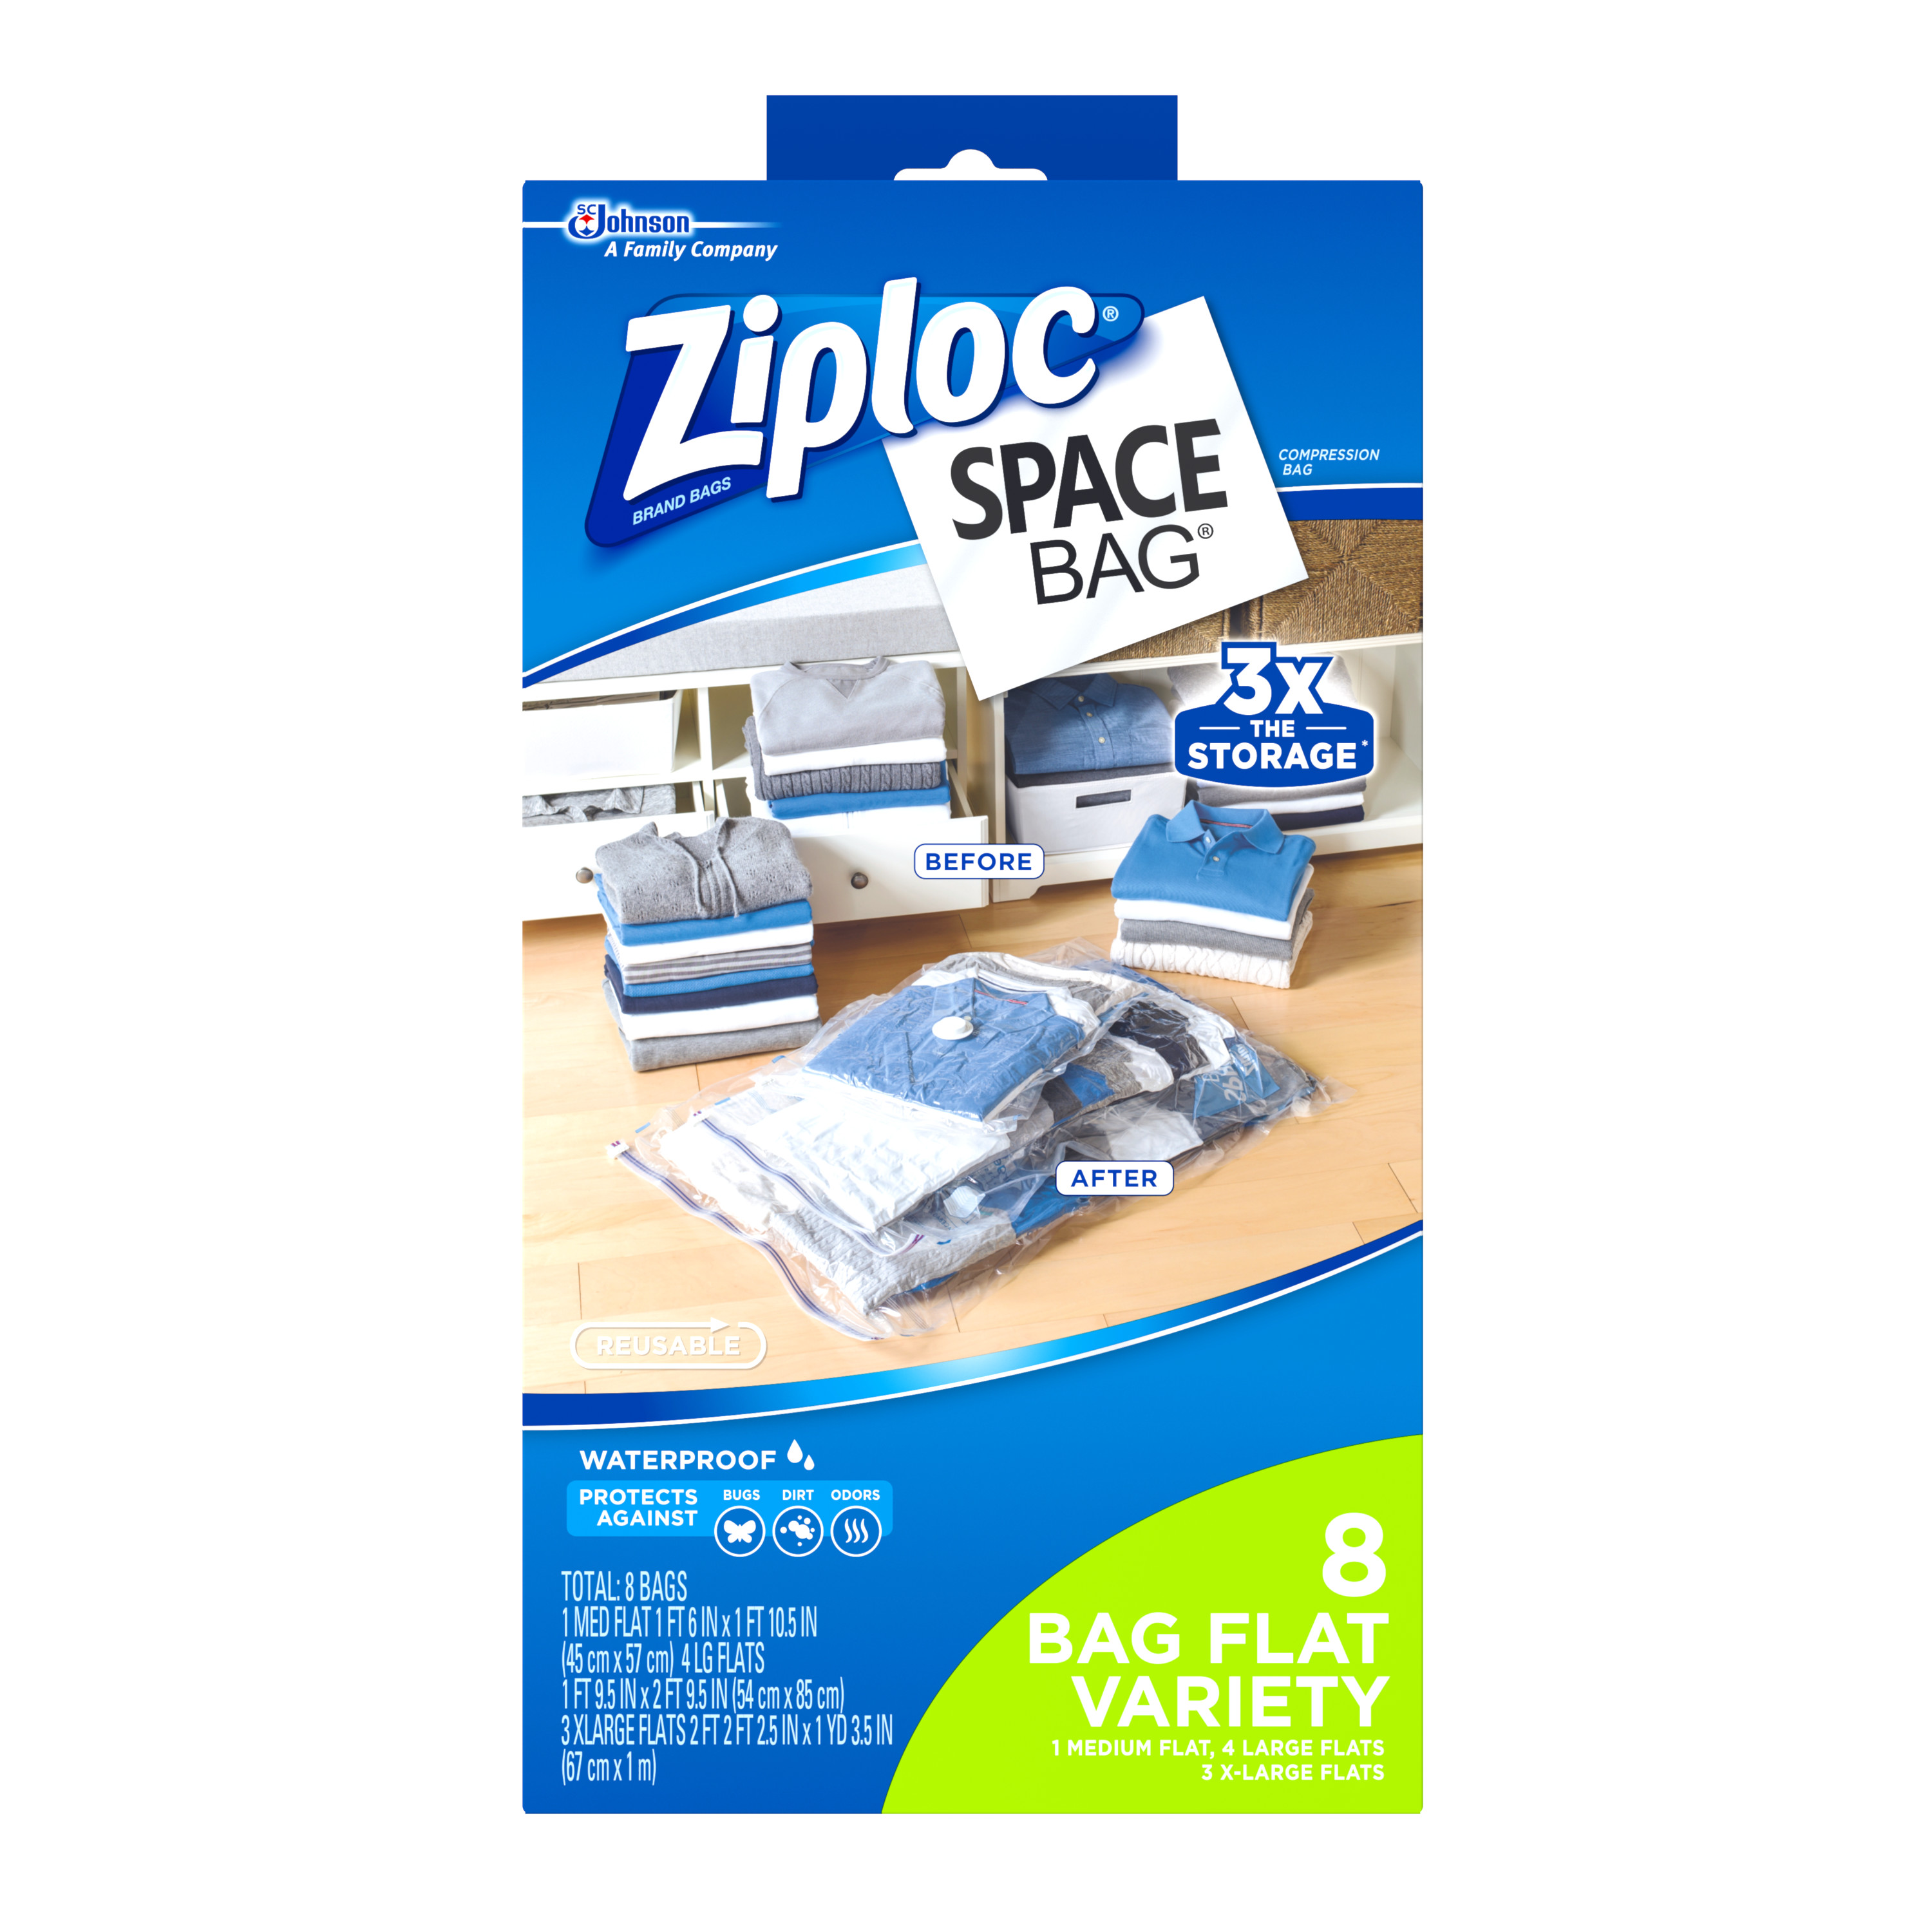 Ziploc Space Bag 8ct Bag: 4 Large, 3 Extra Large, 1 Medium